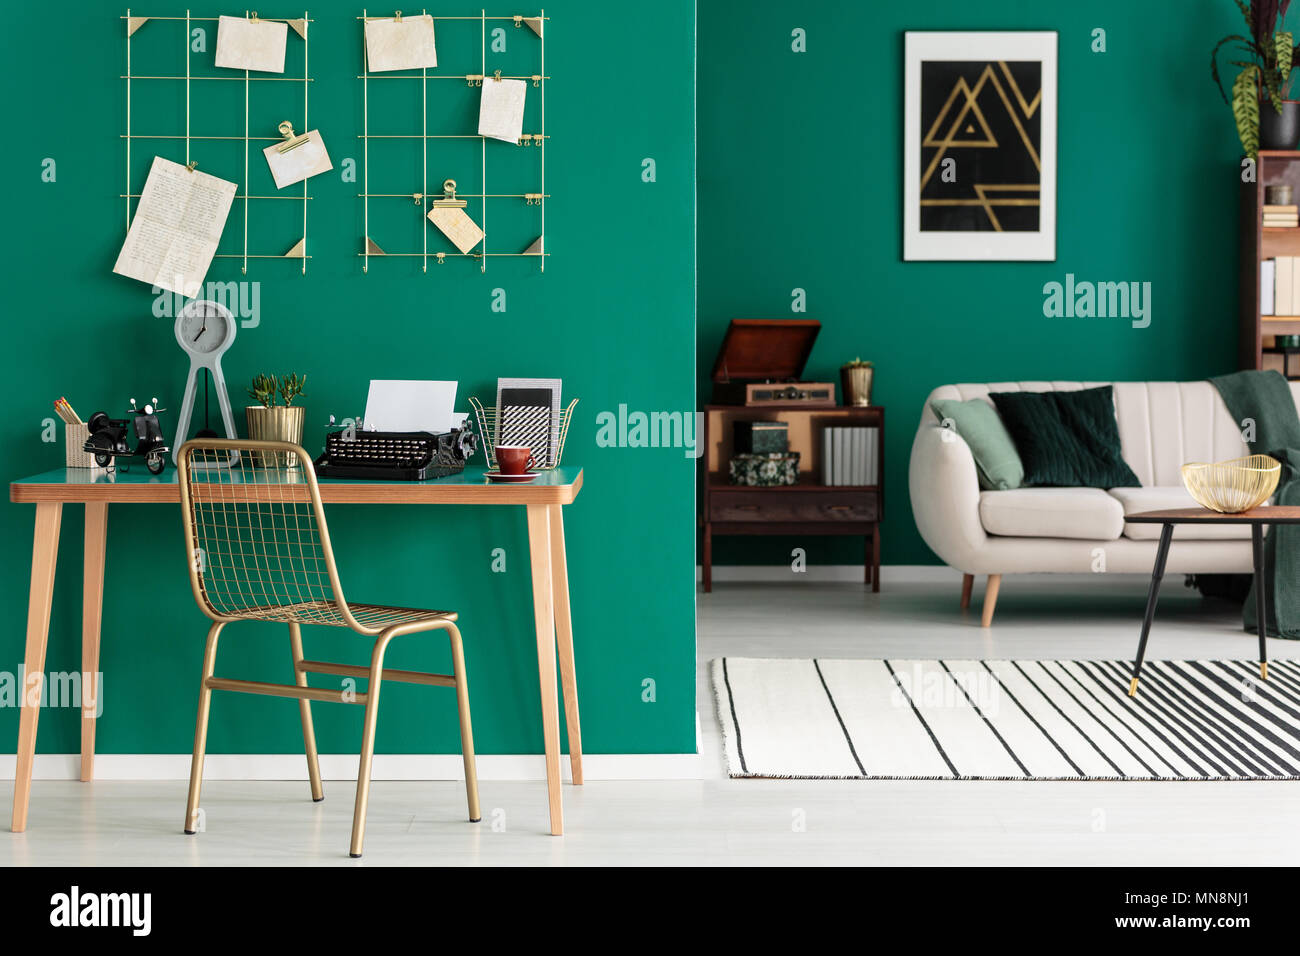 Gold chair at desk with typewriter in freelancer's open space interior with settee against emerald green wall - Stock Image